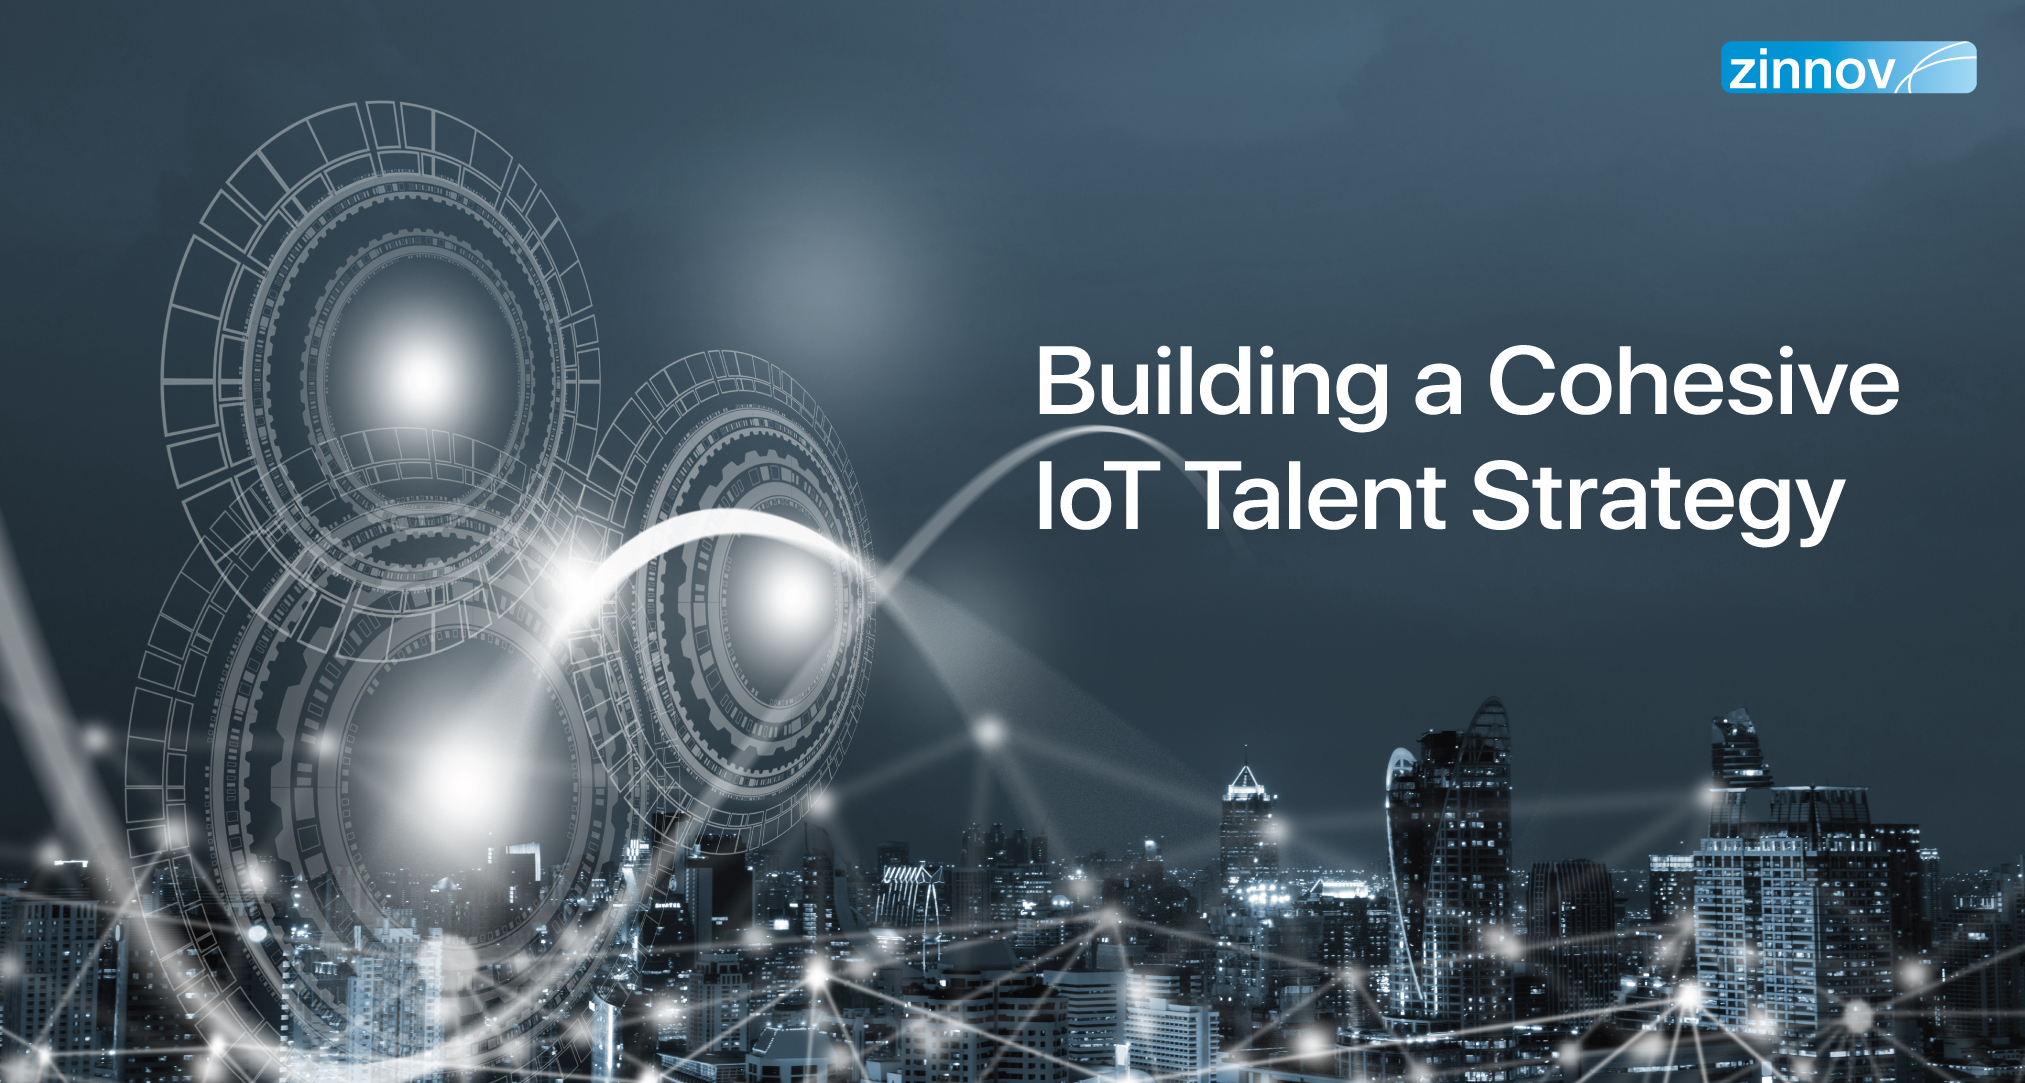 Building A Cohesive IoT Talent Strategy